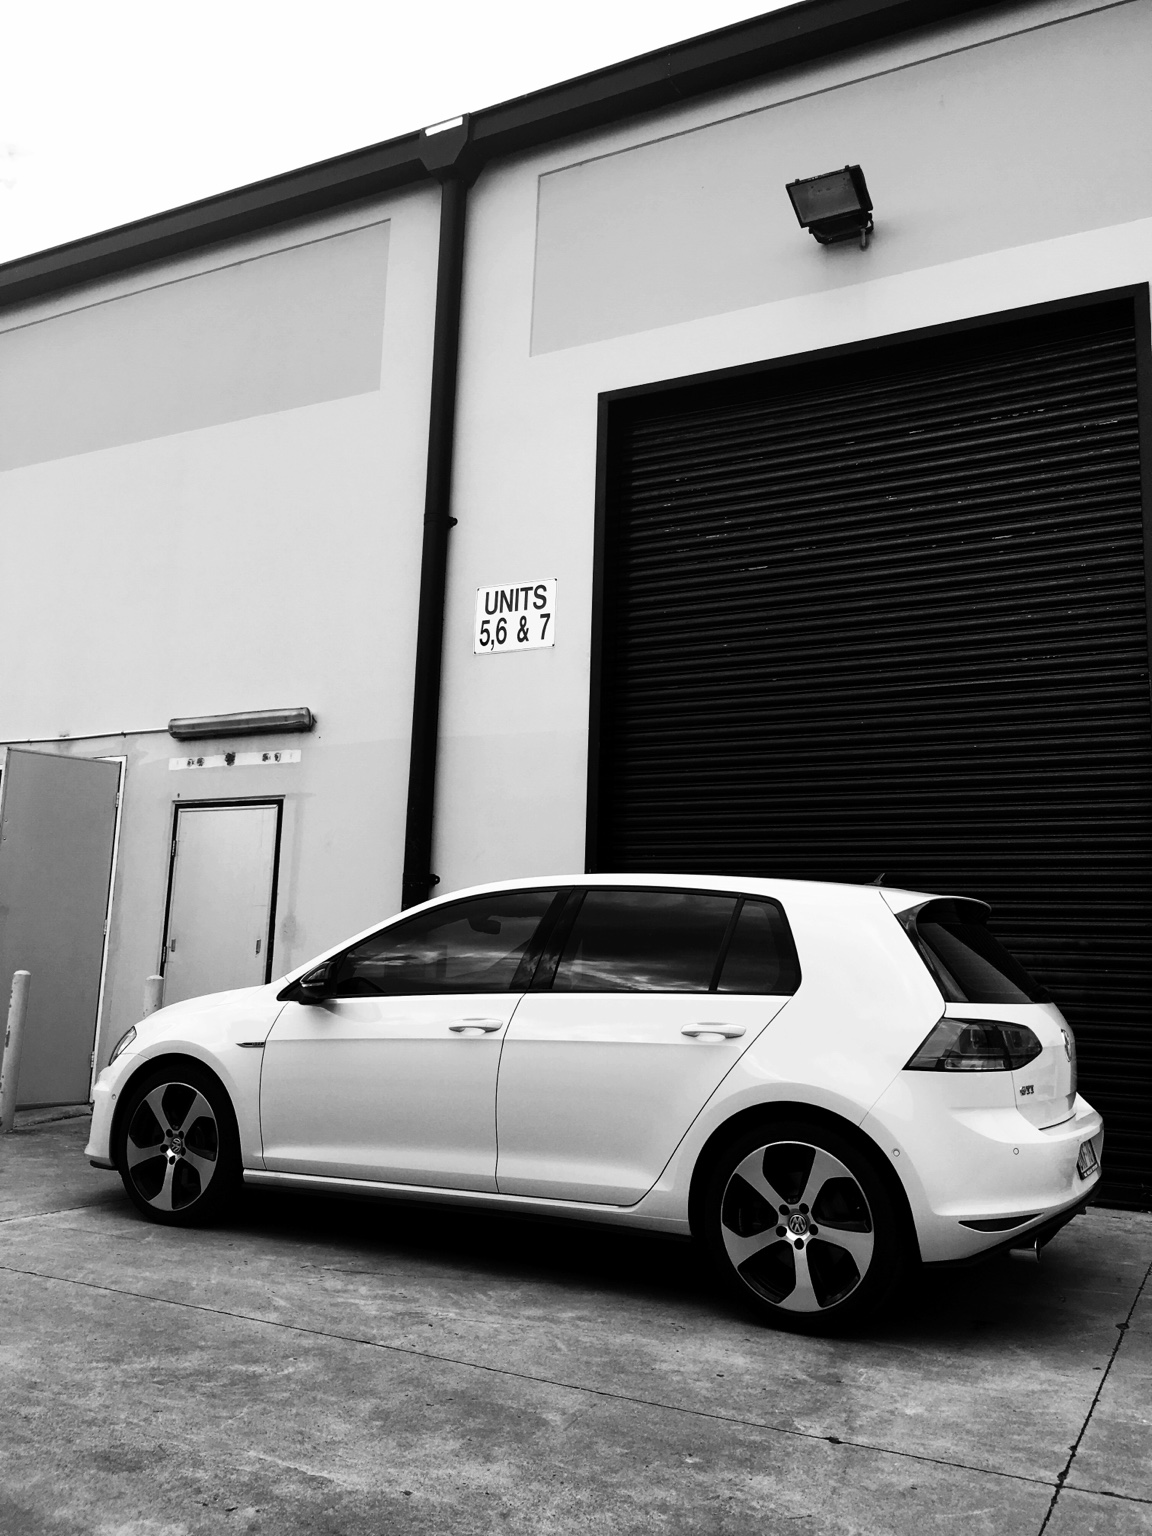 Official Pure White GTI / Golf Thread - Page 38 - GOLFMK7